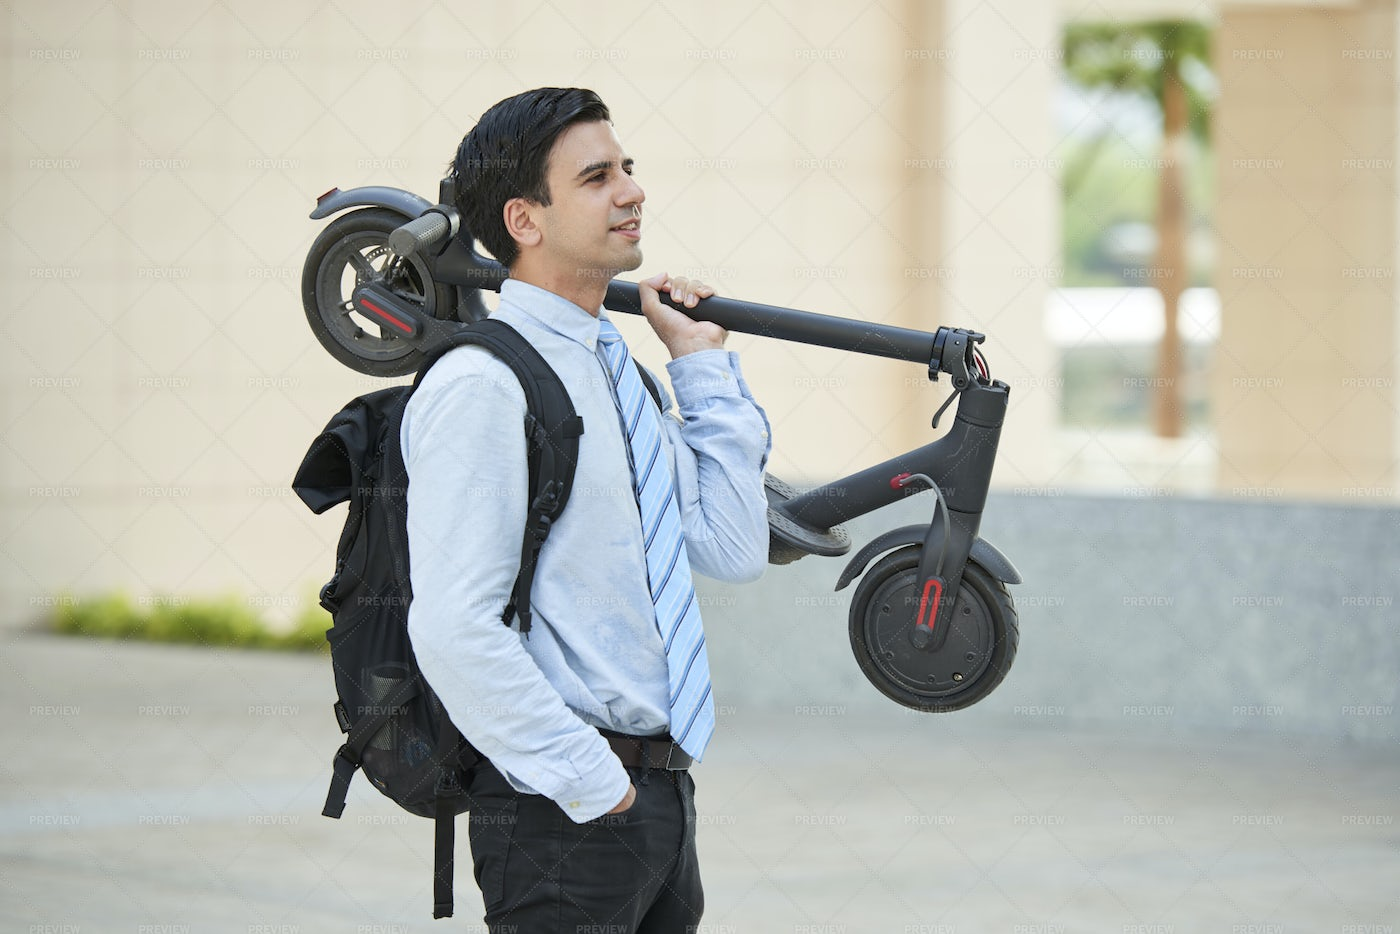 Businessman With Scooter In The City: Stock Photos